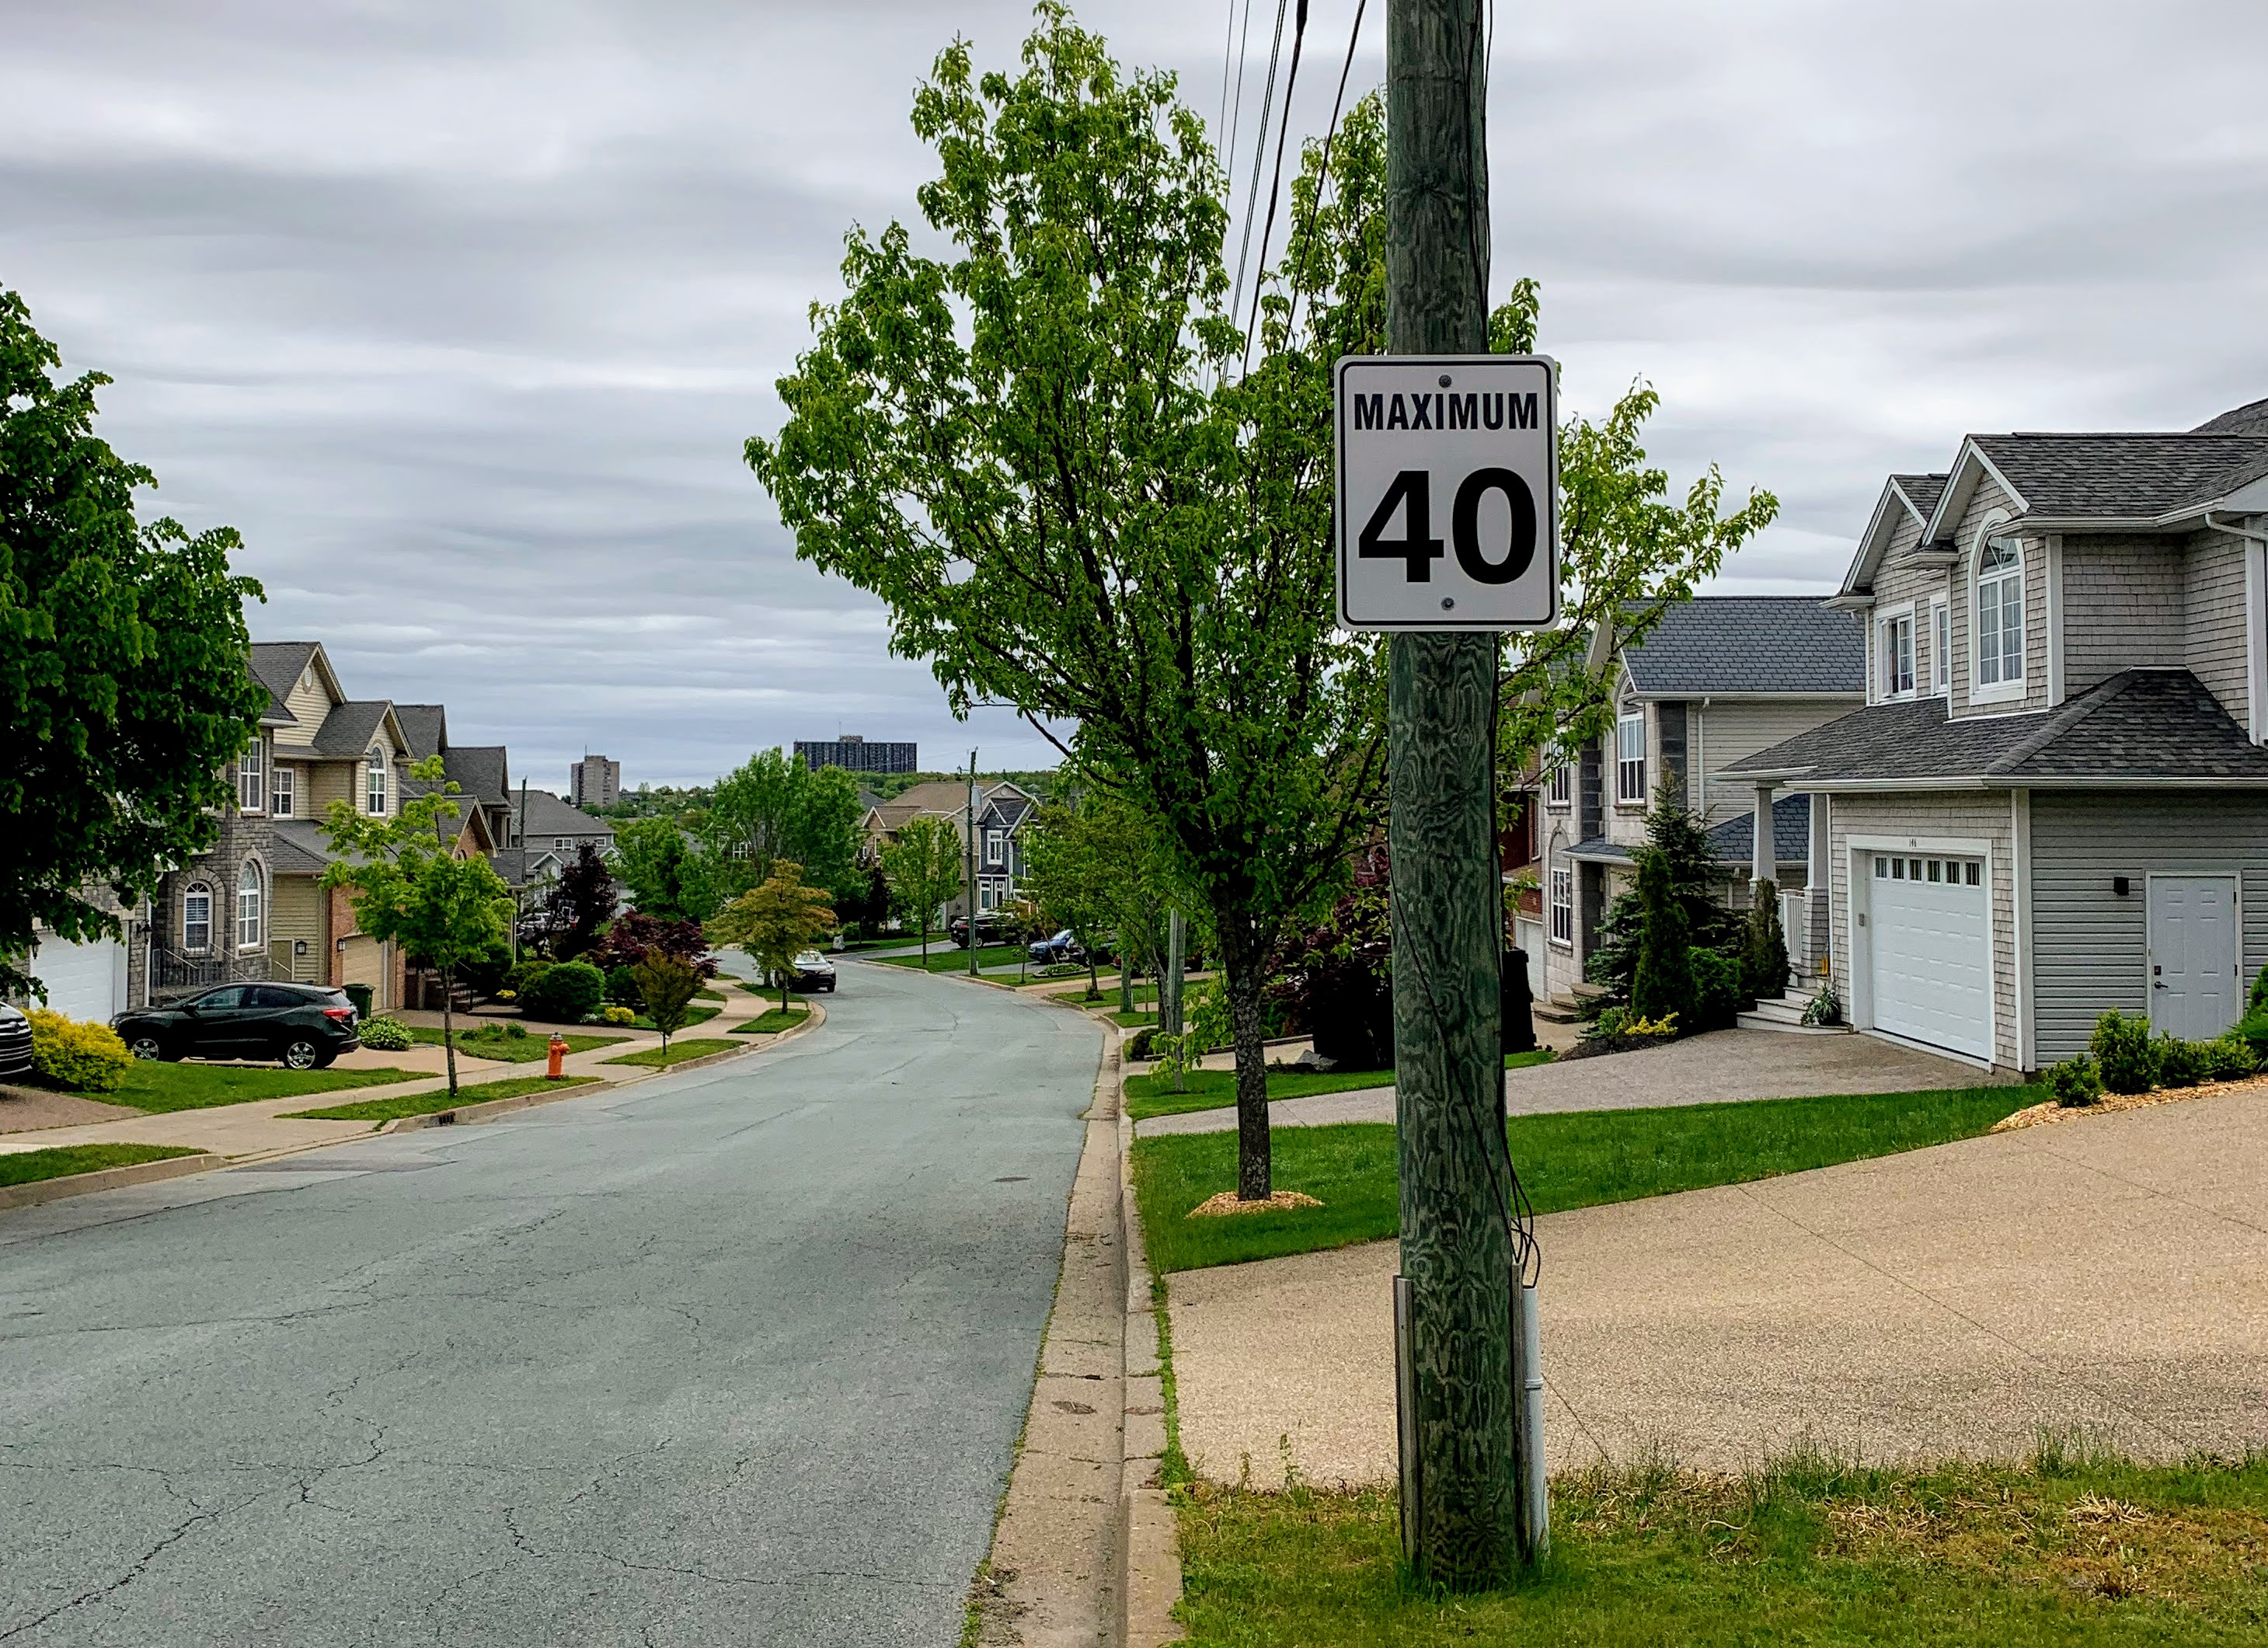 Neighbourhood 40km/h Speed Limit Sign